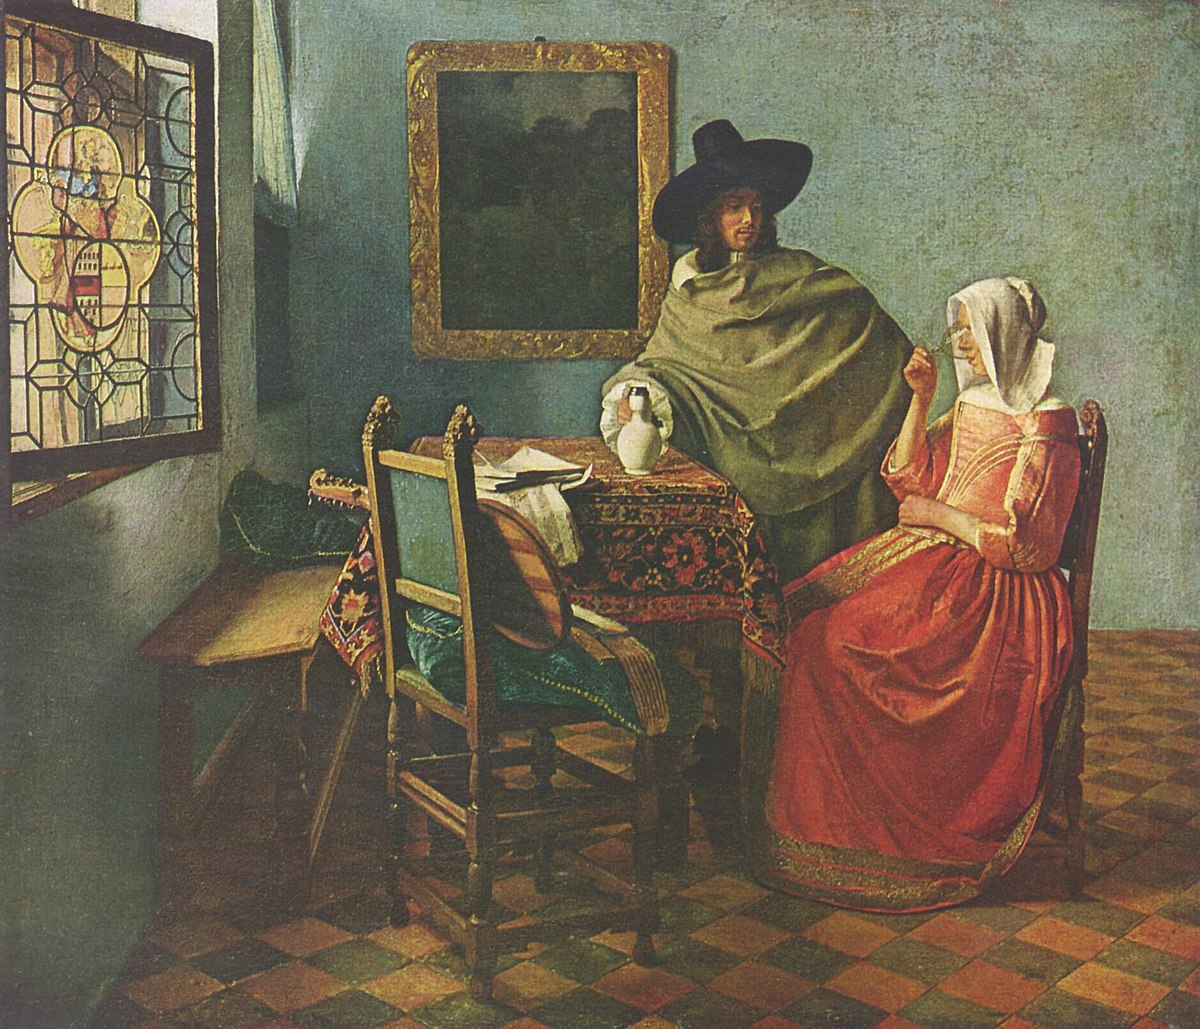 https://upload.wikimedia.org/wikipedia/commons/thumb/1/19/Jan_Vermeer_van_Delft_018.jpg/1200px-Jan_Vermeer_van_Delft_018.jpg